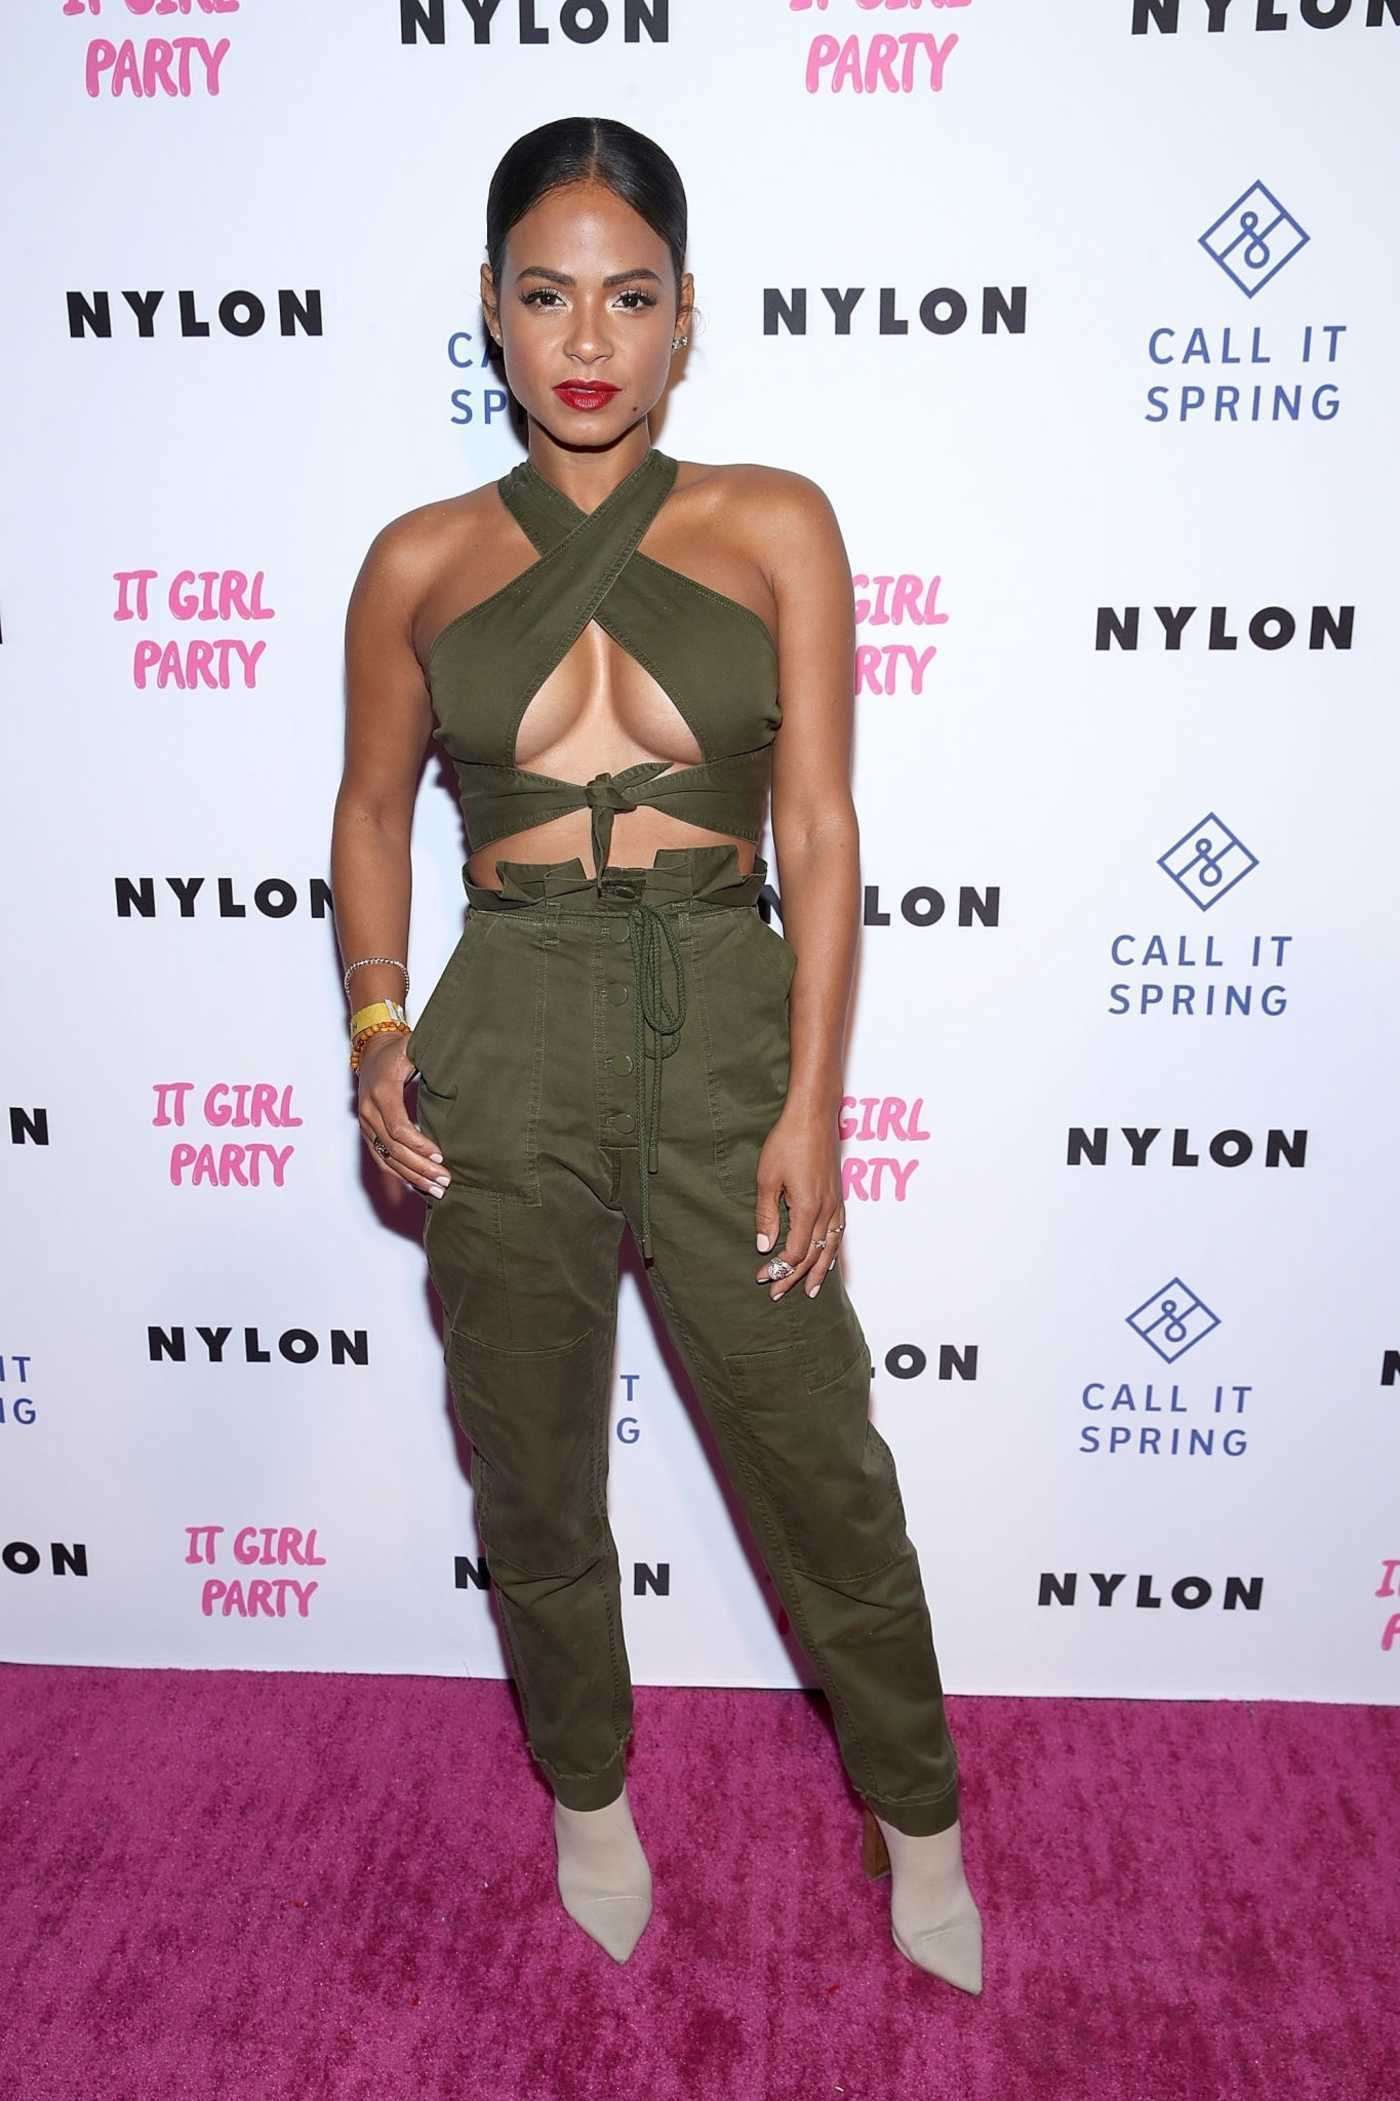 Christina Milian Attends NYLON's Annual It Girl Party at The Ace Hotel in LA 10/11/2018